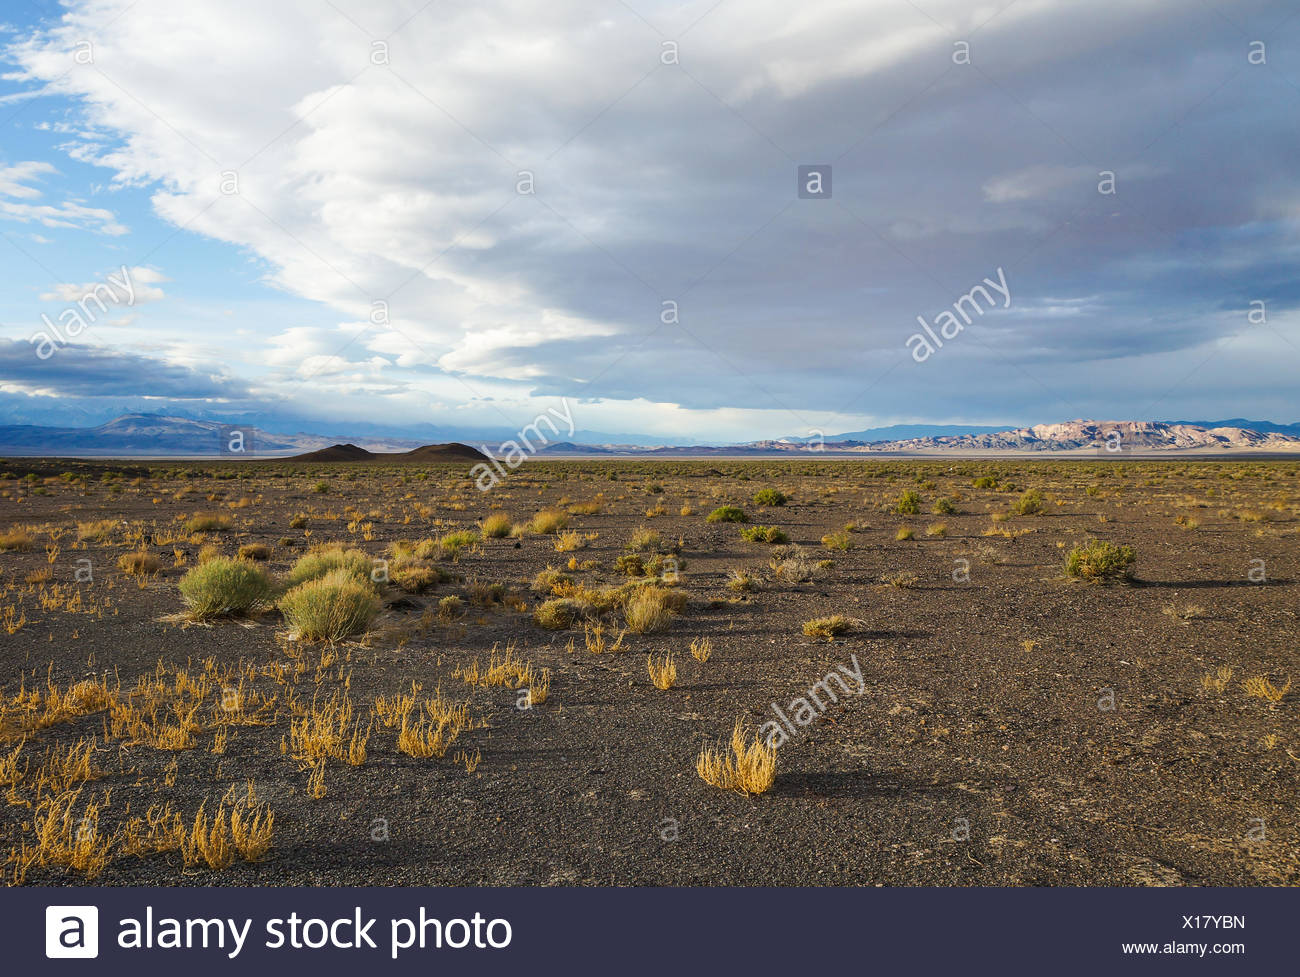 Endless view - Stock Image